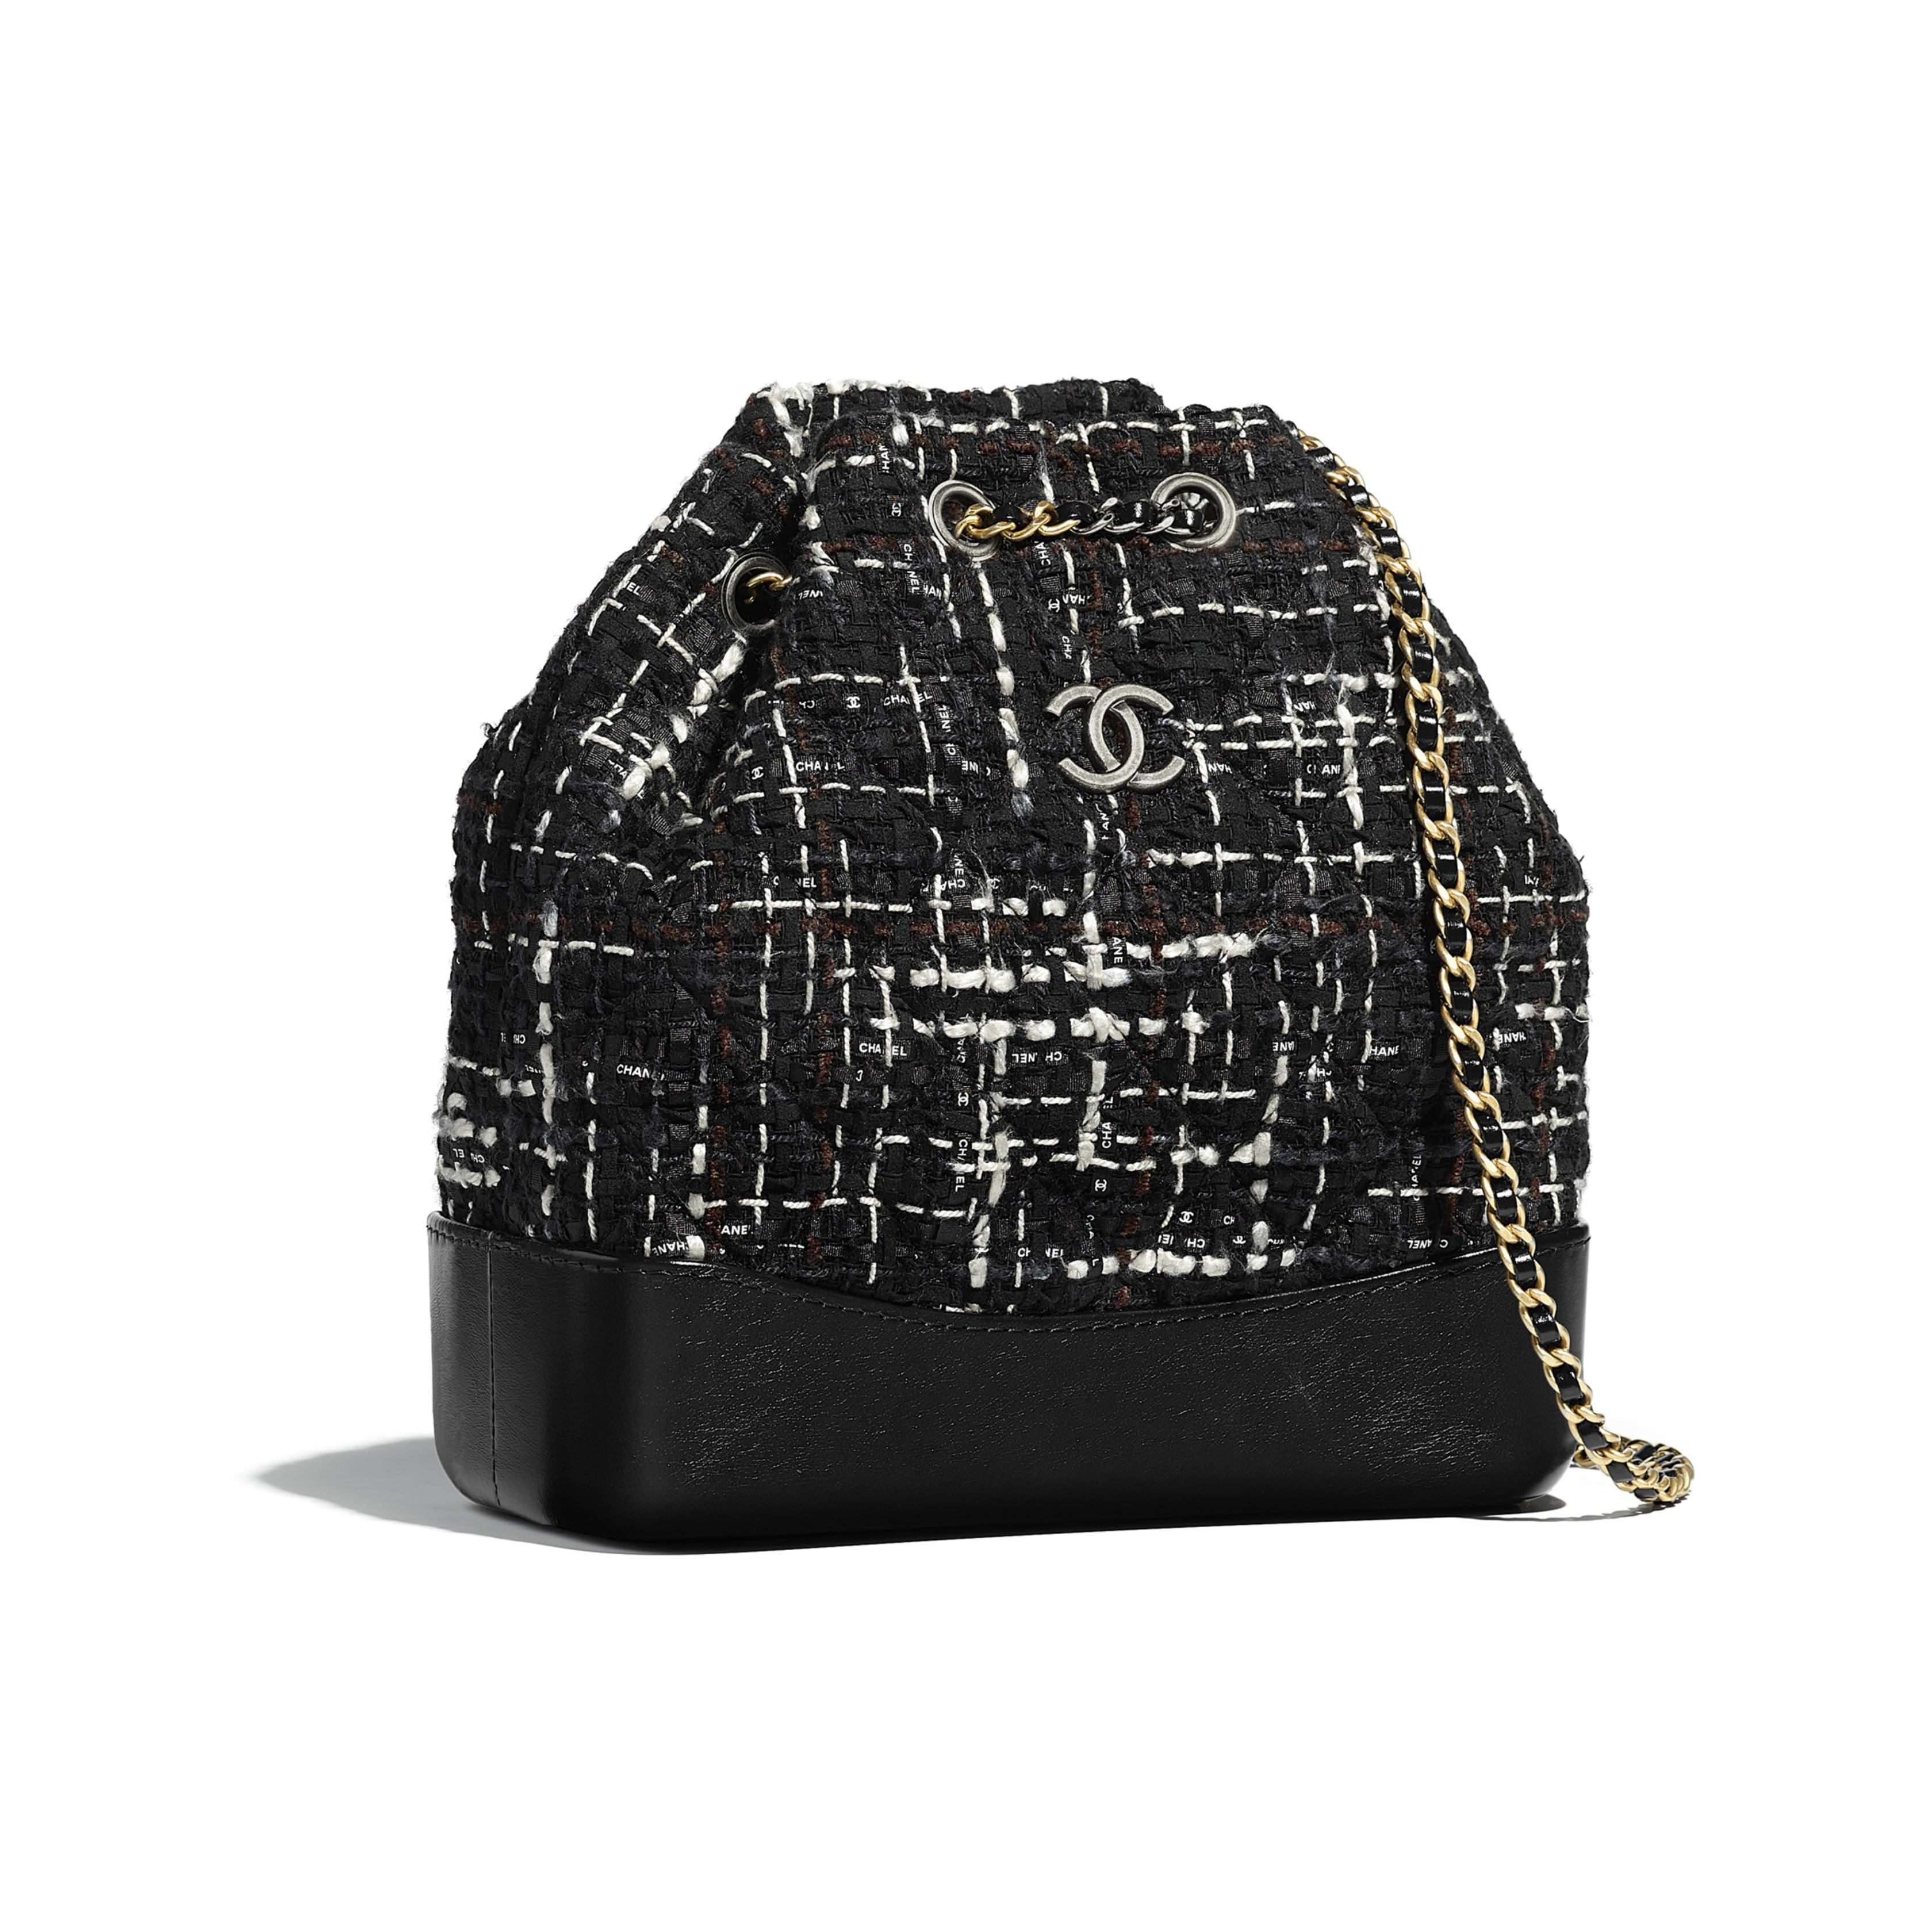 CHANEL S GABRIELLE Small Backpack Tweed 3d8a3d963c6ac